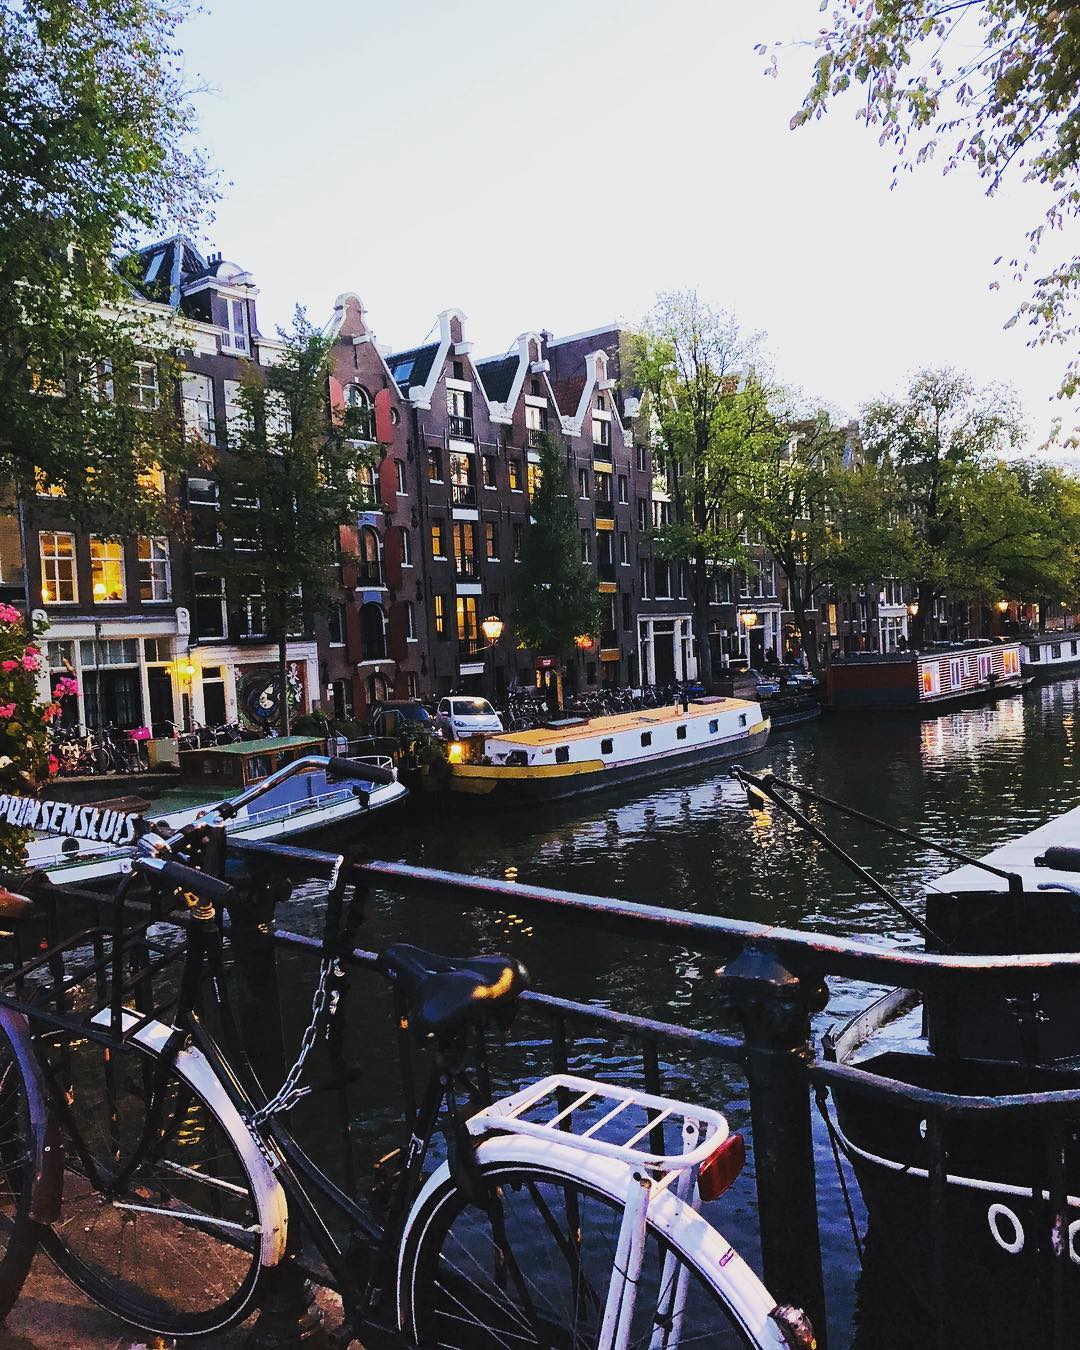 13 Things You Must Do In Amsterdam. Rent a bike and explore. Whether it's your first time in the city or you have been to Amsterdam numerous times, you truly haven't experienced the city until you do these activities. #Amsterdam #Travel #Traveler #Netherlands